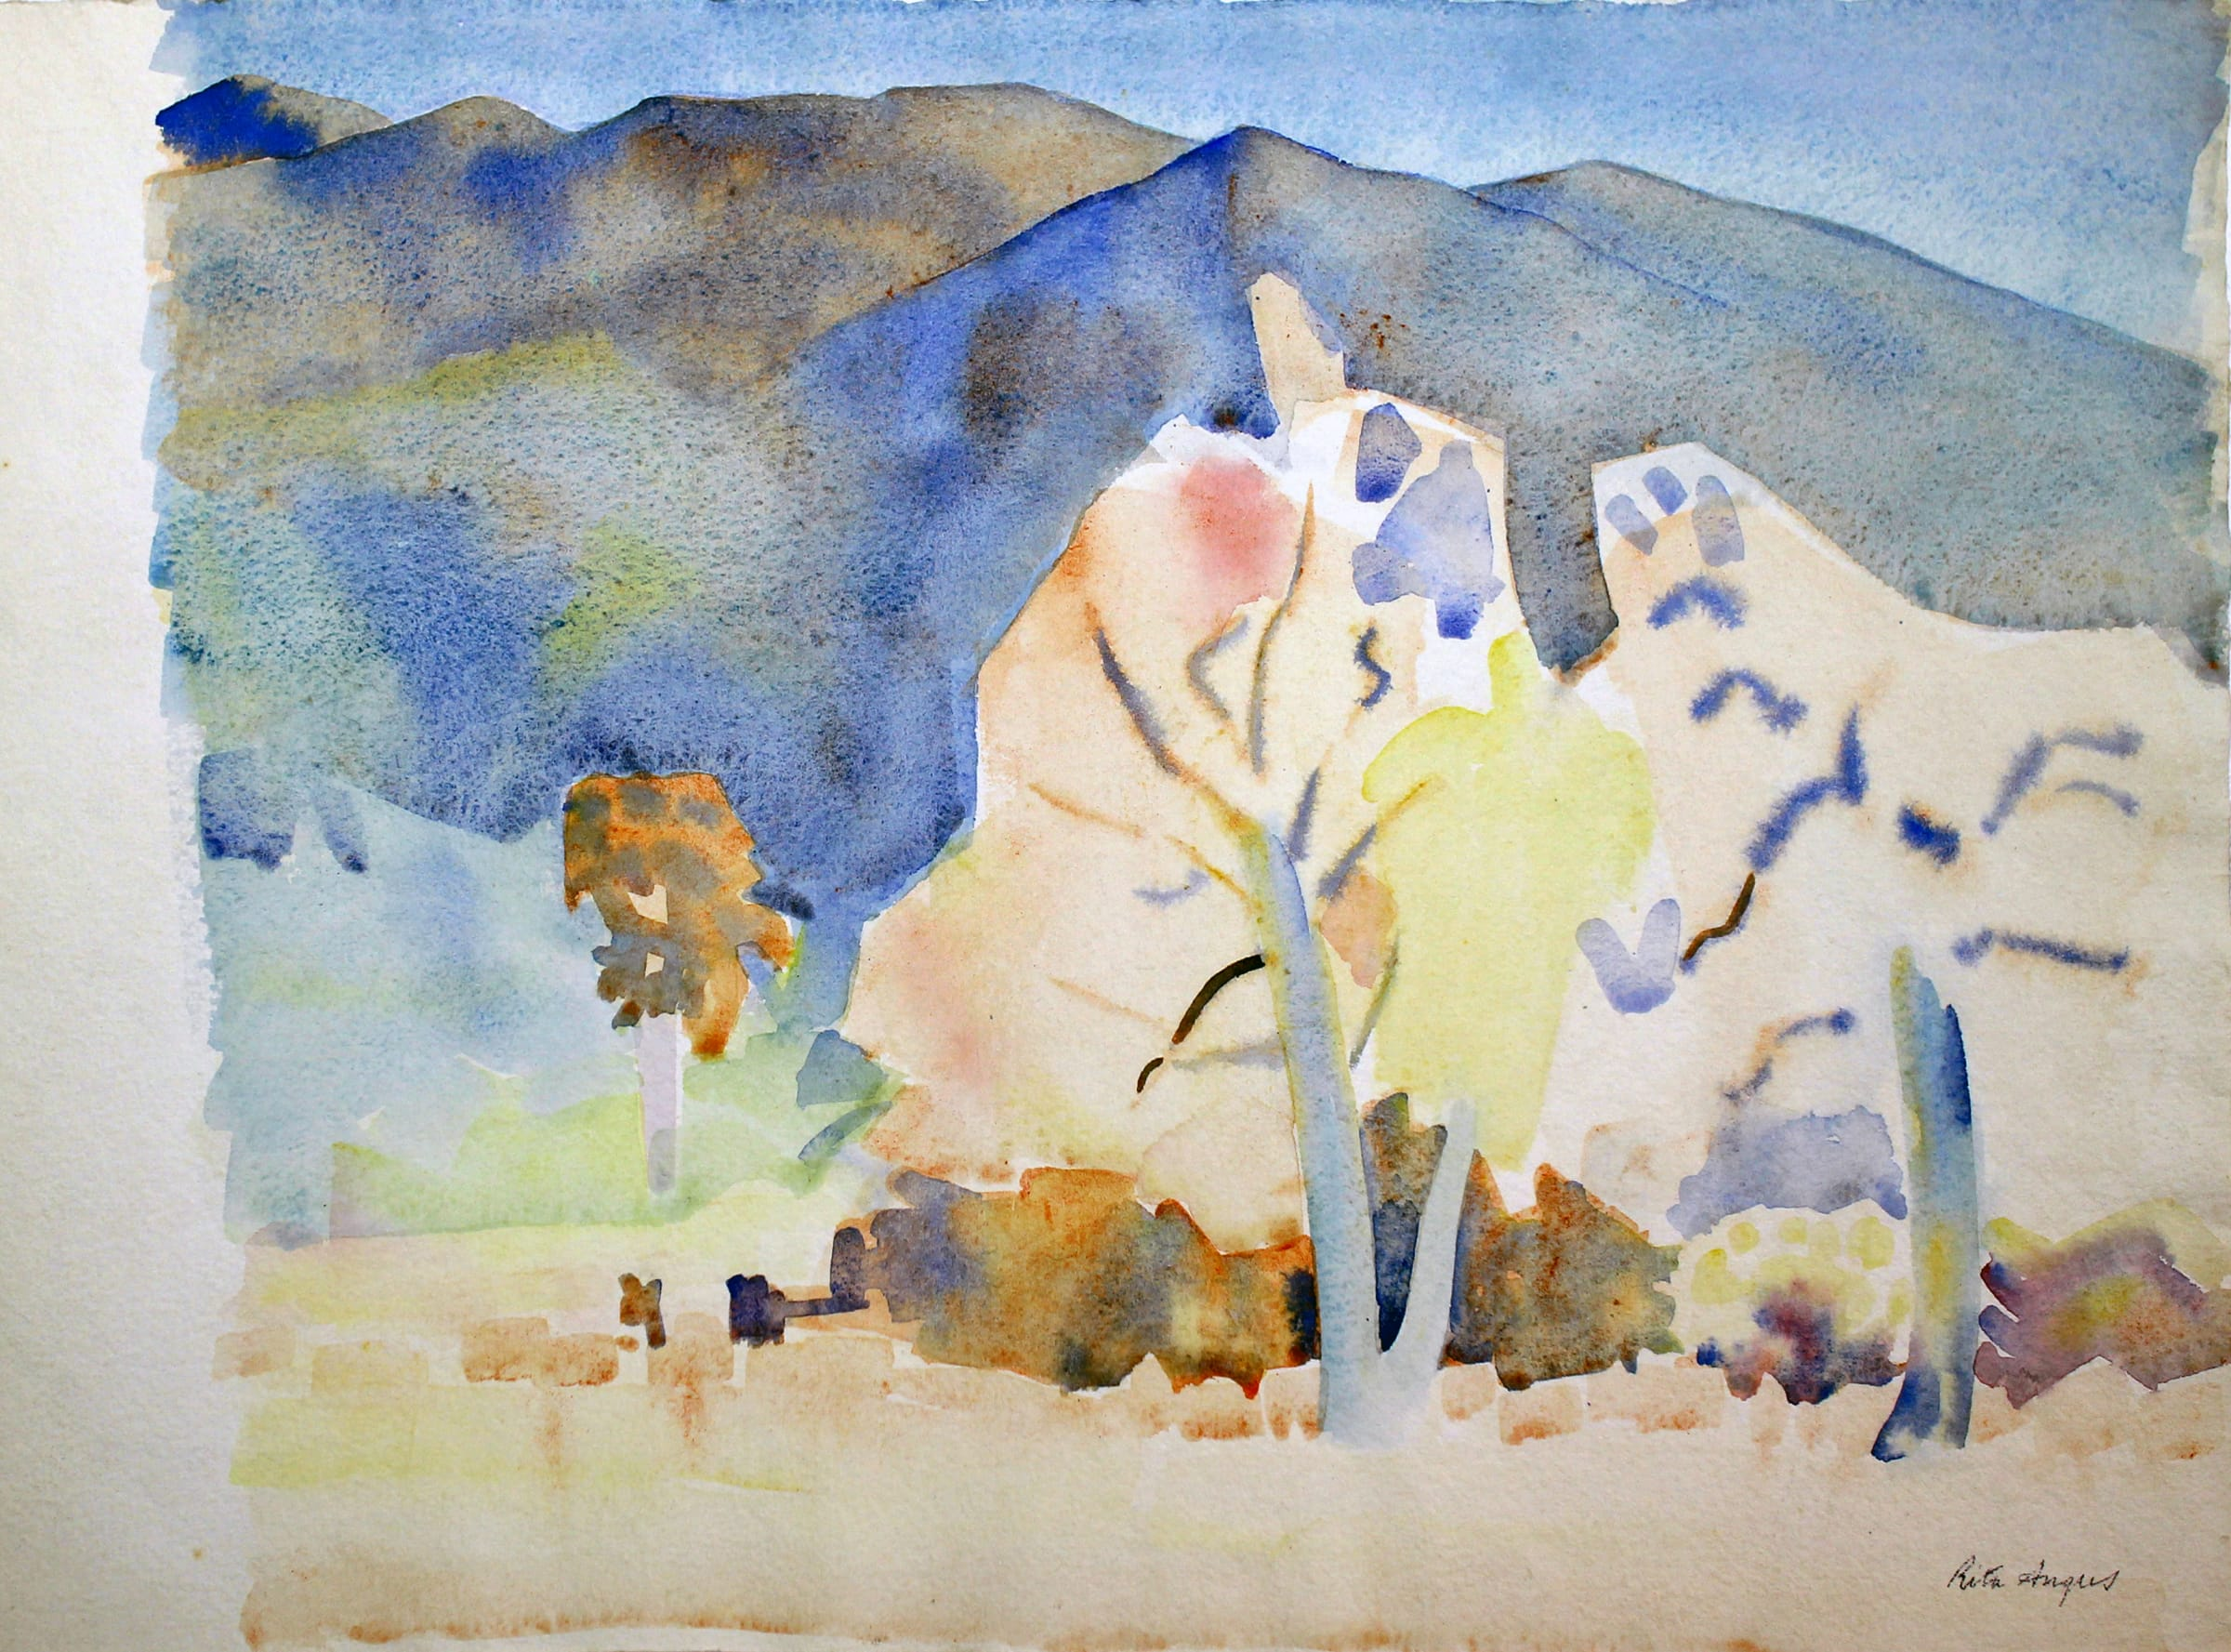 "<span class=""link fancybox-details-link""><a href=""/exhibitions/36/works/artworks6389/"">View Detail Page</a></span><div class=""medium"">Watercolour on paper</div> <div class=""dimensions"">11.2 x 15.4 in<br />28.5 x 39.2 cm</div>"